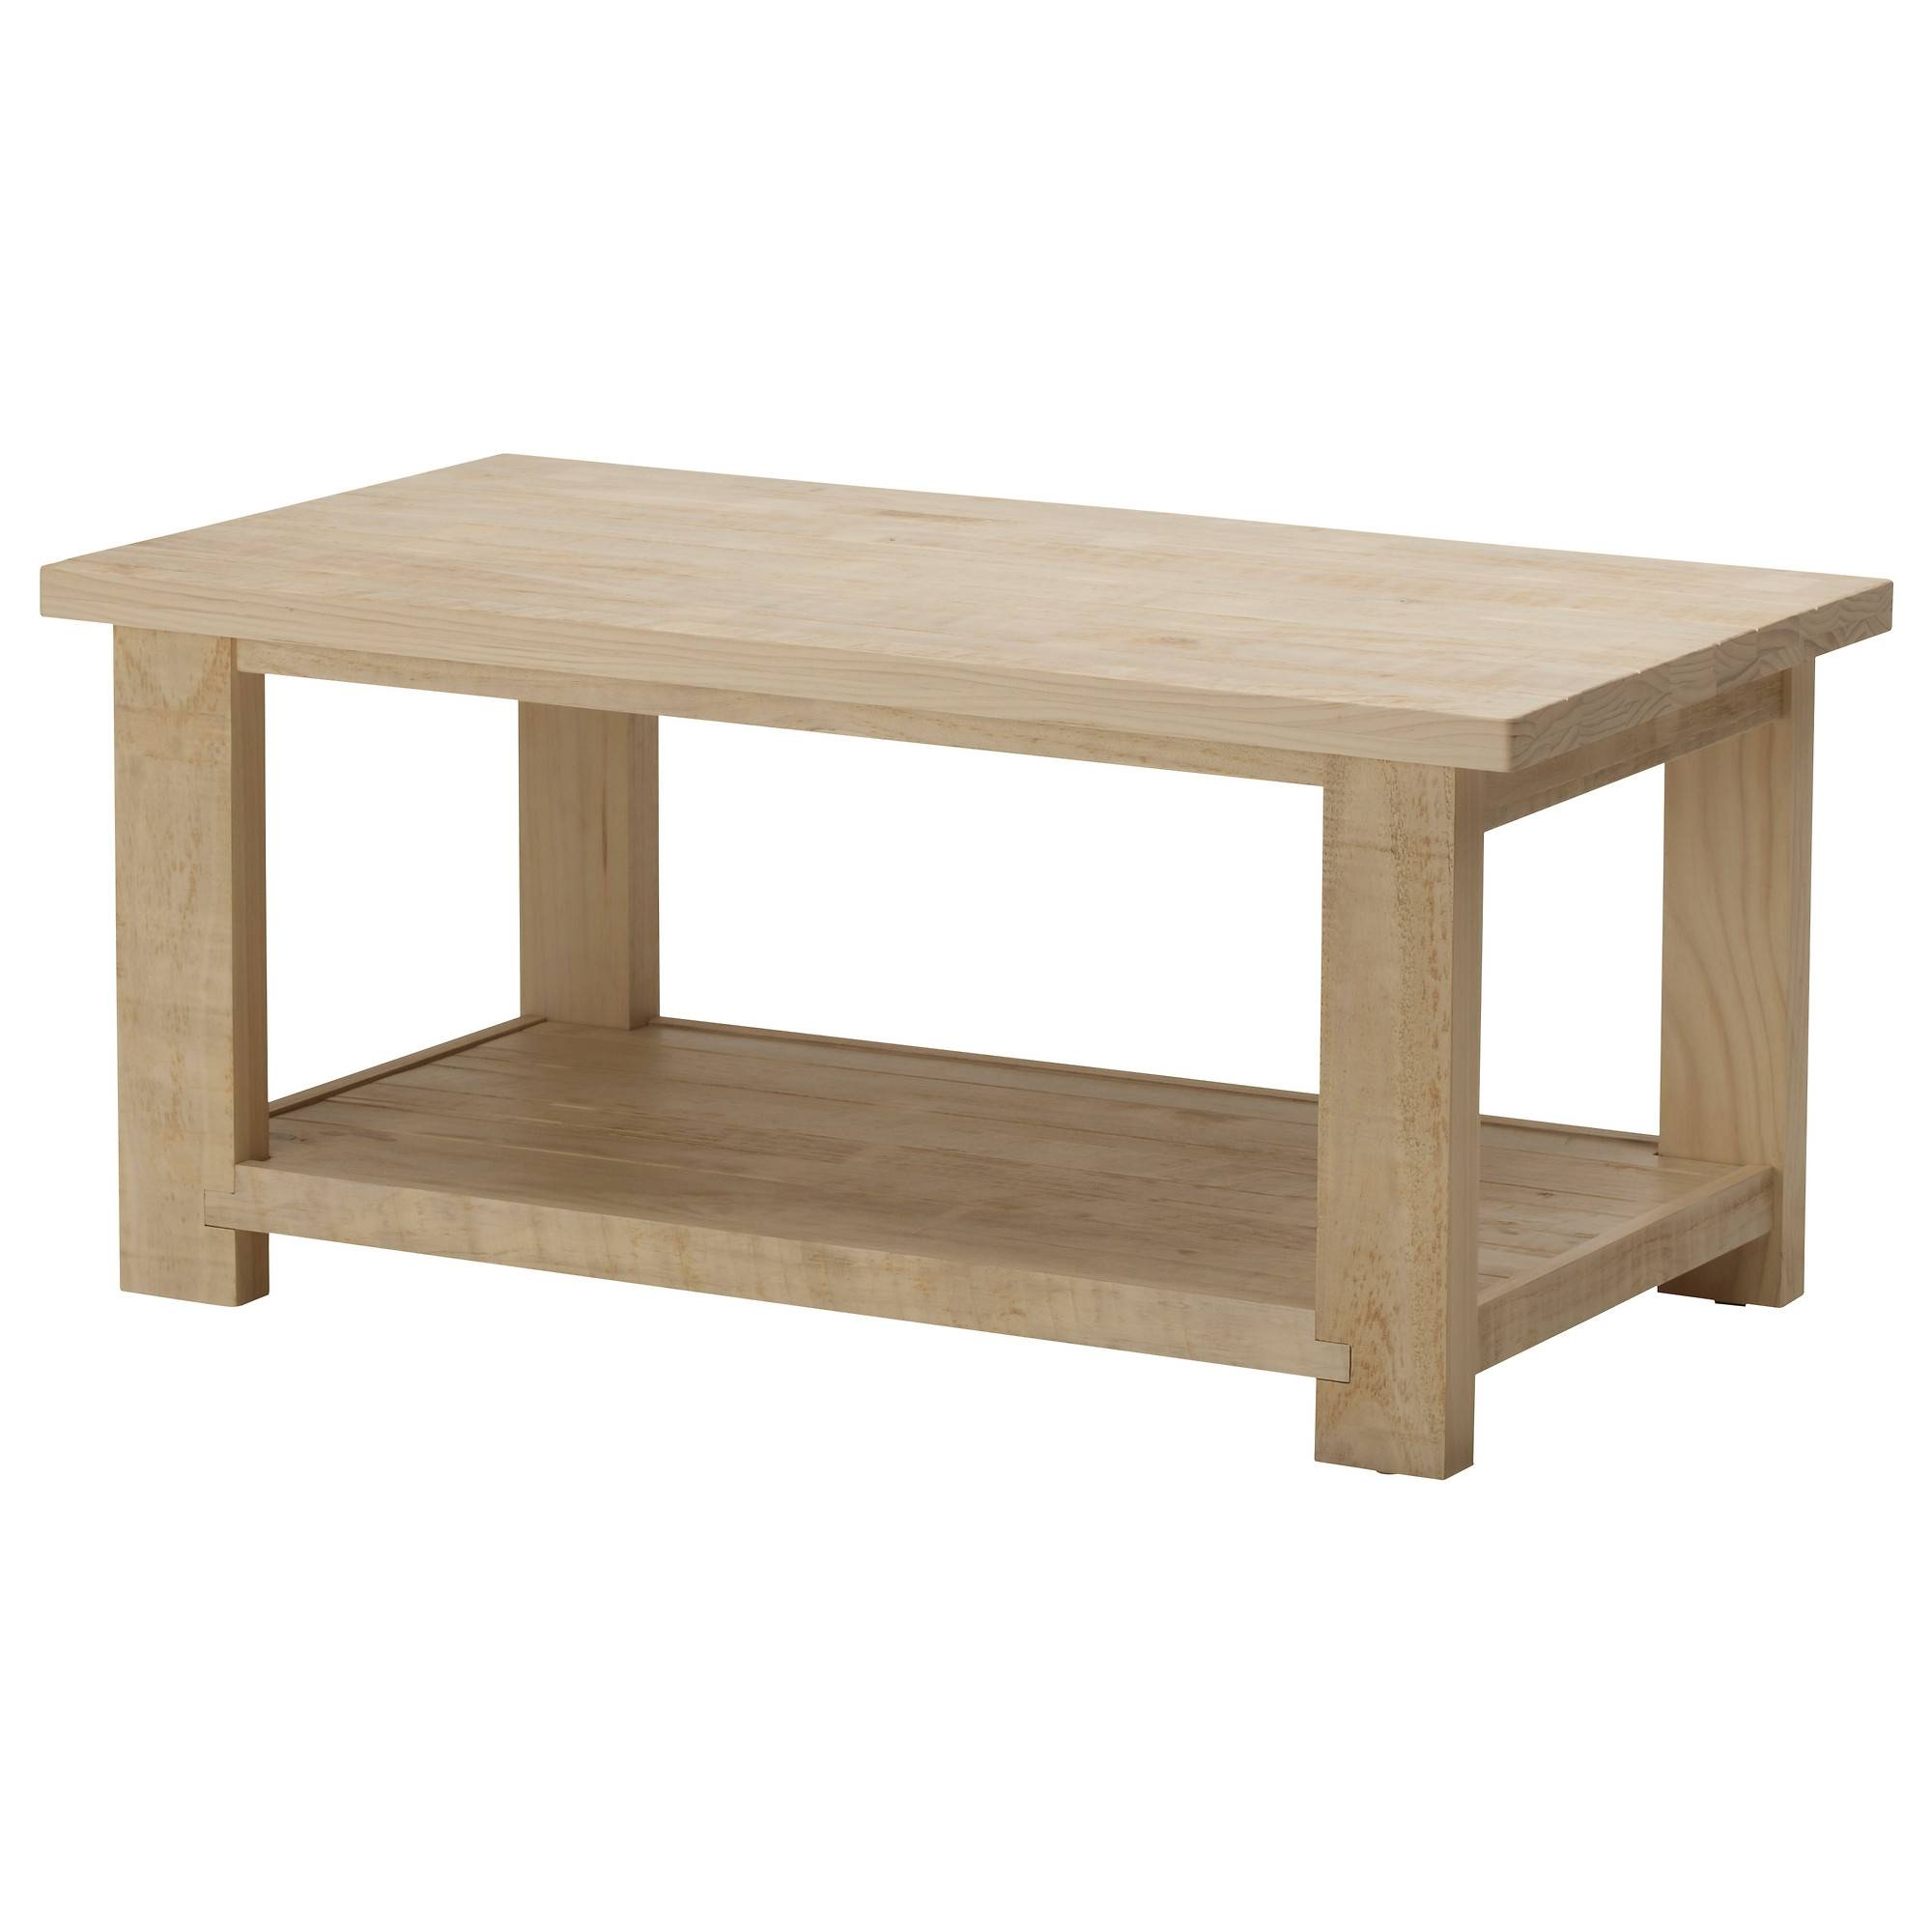 2018 Best of Low Height Coffee Tables